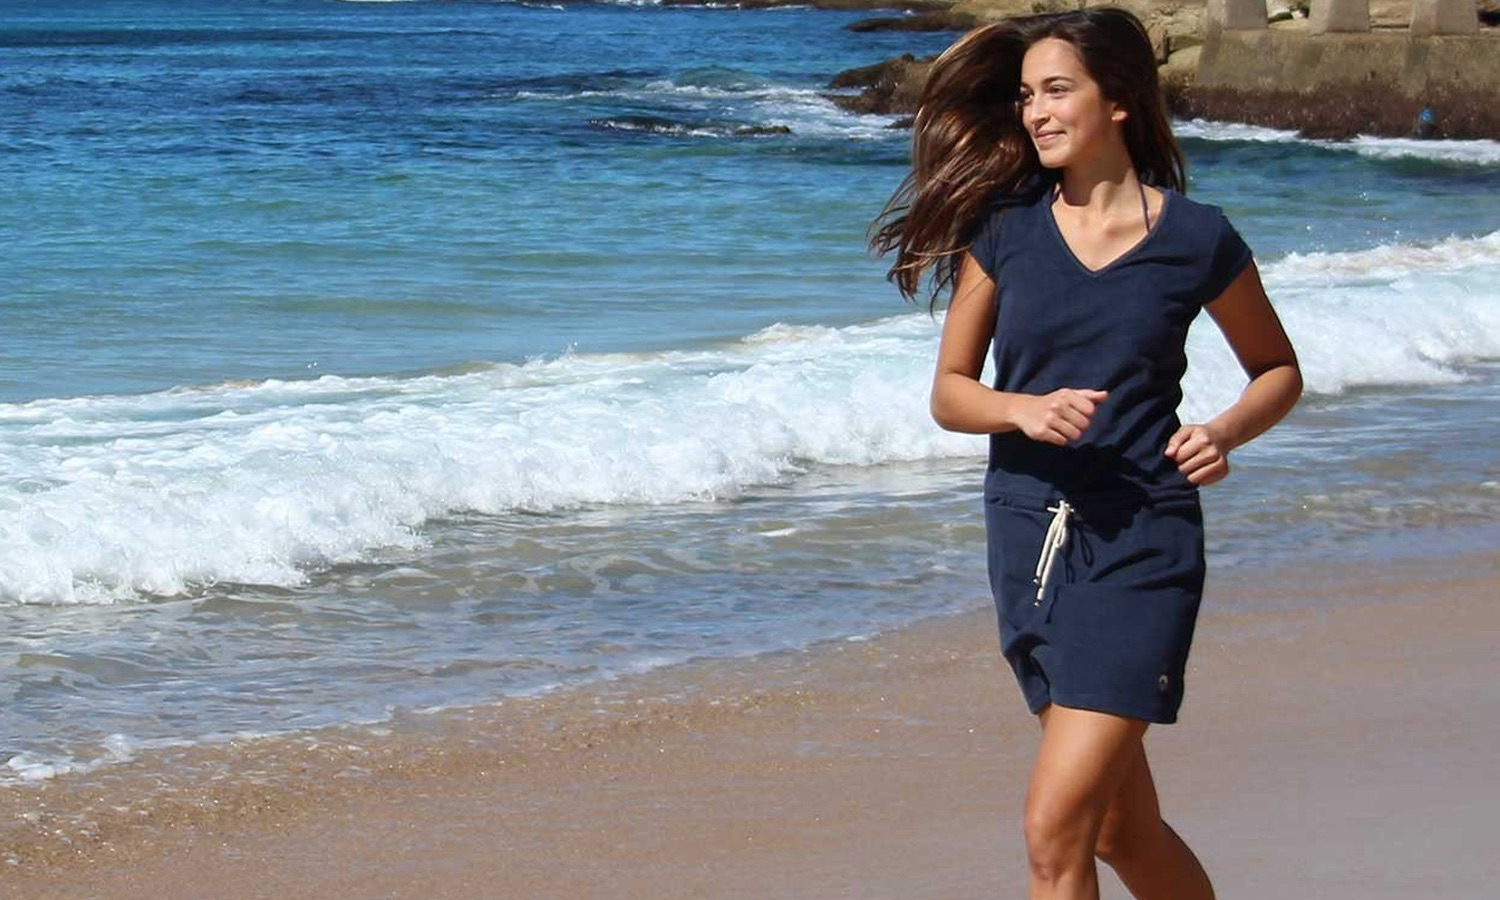 woman running on the beach with a blue dress